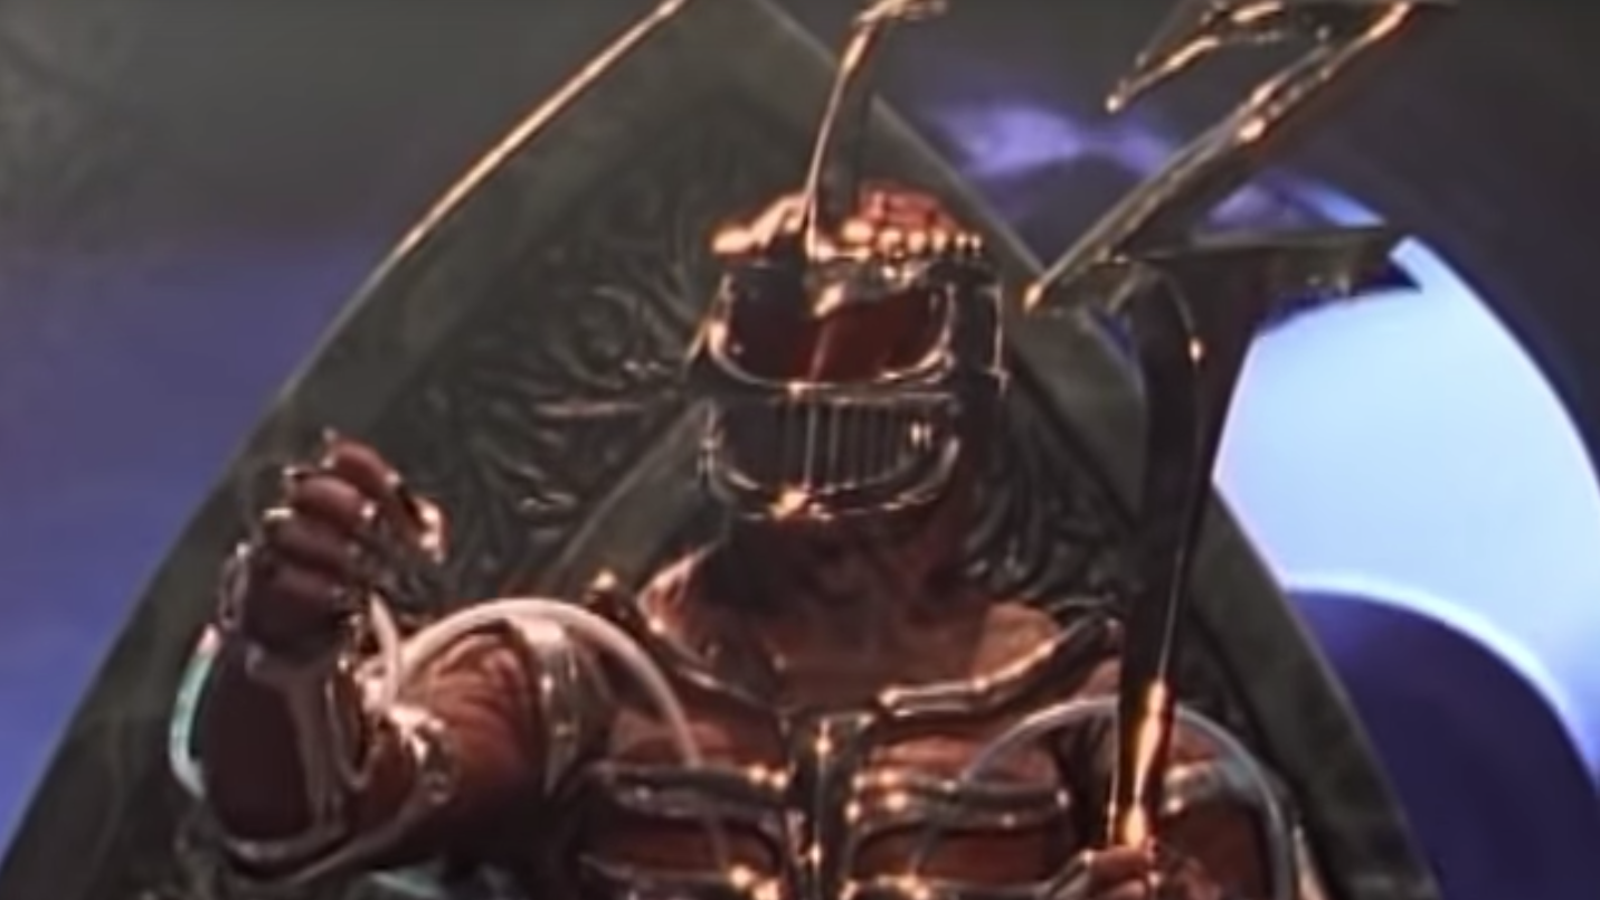 R.I.P. Robert Axelrod, voice of Lord Zedd from Mighty Morphin Power Rangers